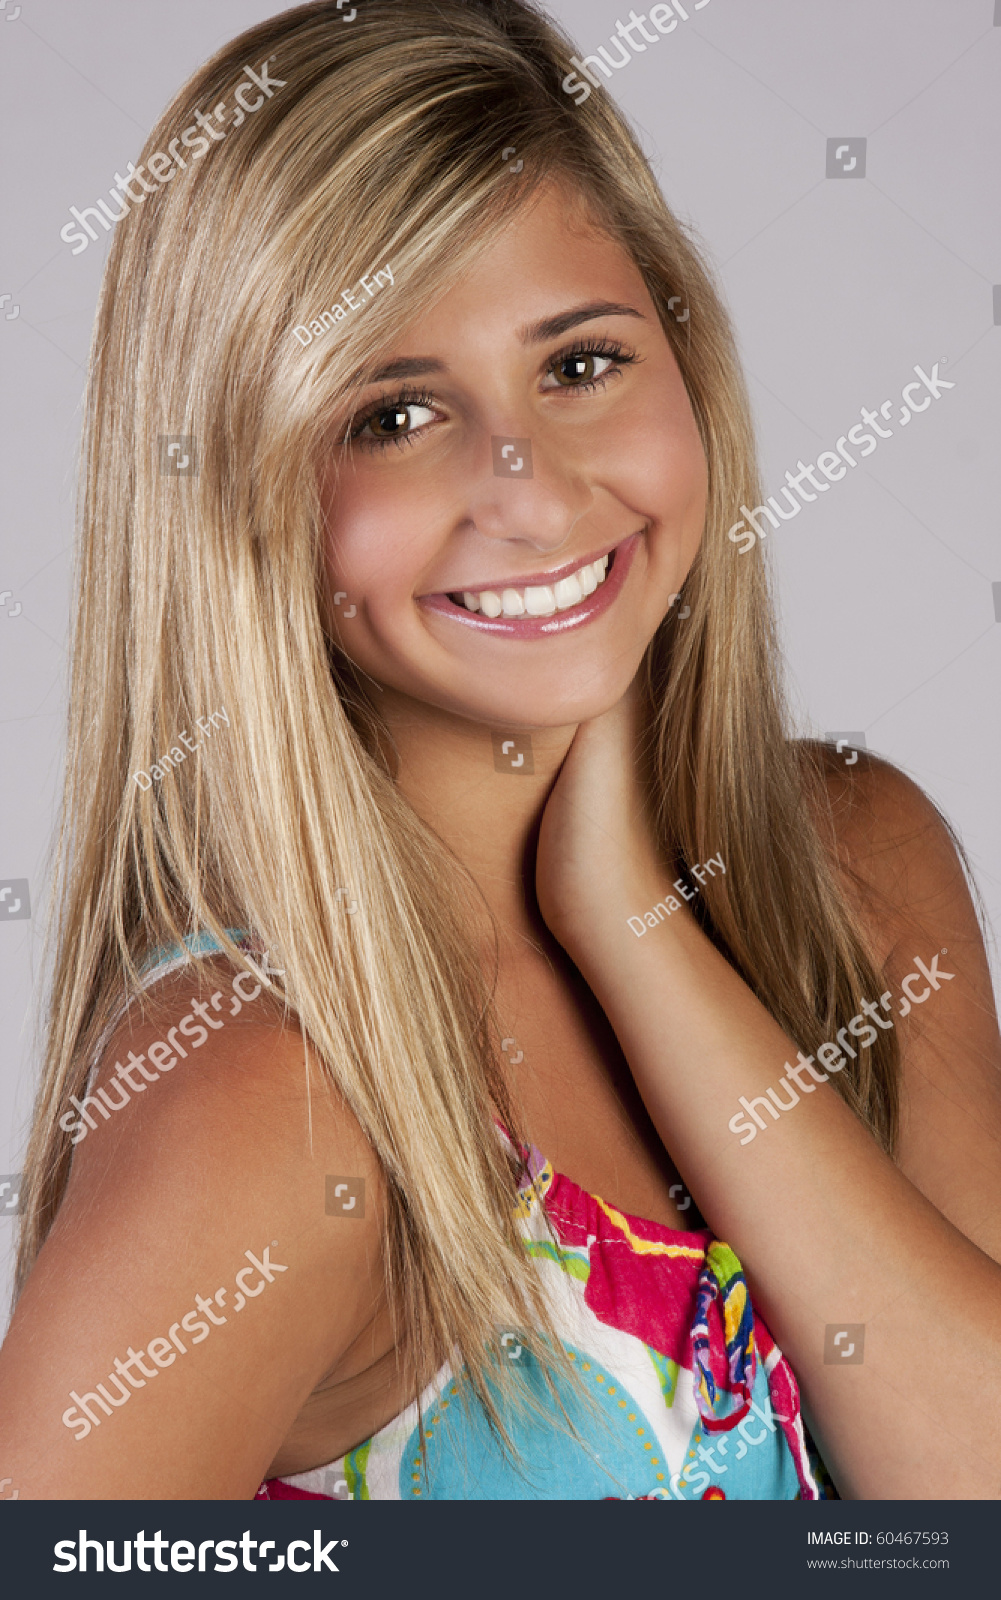 Colorful Teen Stock Image Image Of Lipstick Portrait: A Pretty Blond Teen Girl Wearing A Colorful Party Dress